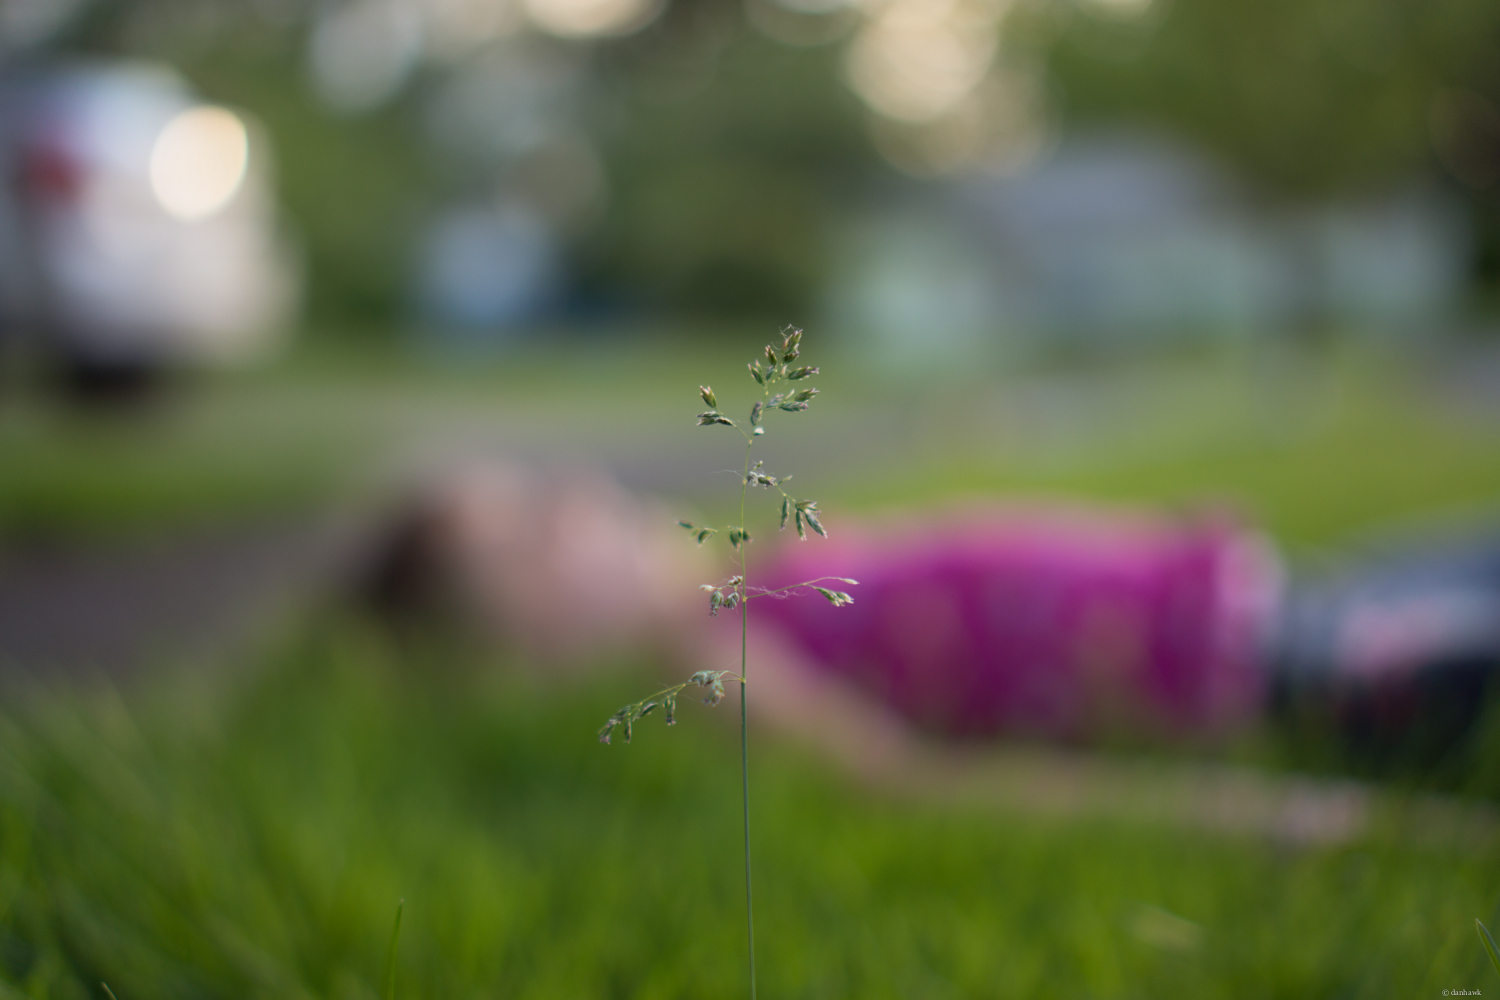 Laying in the Grass | 35mm, f/1.8, ISO 100, 1/320